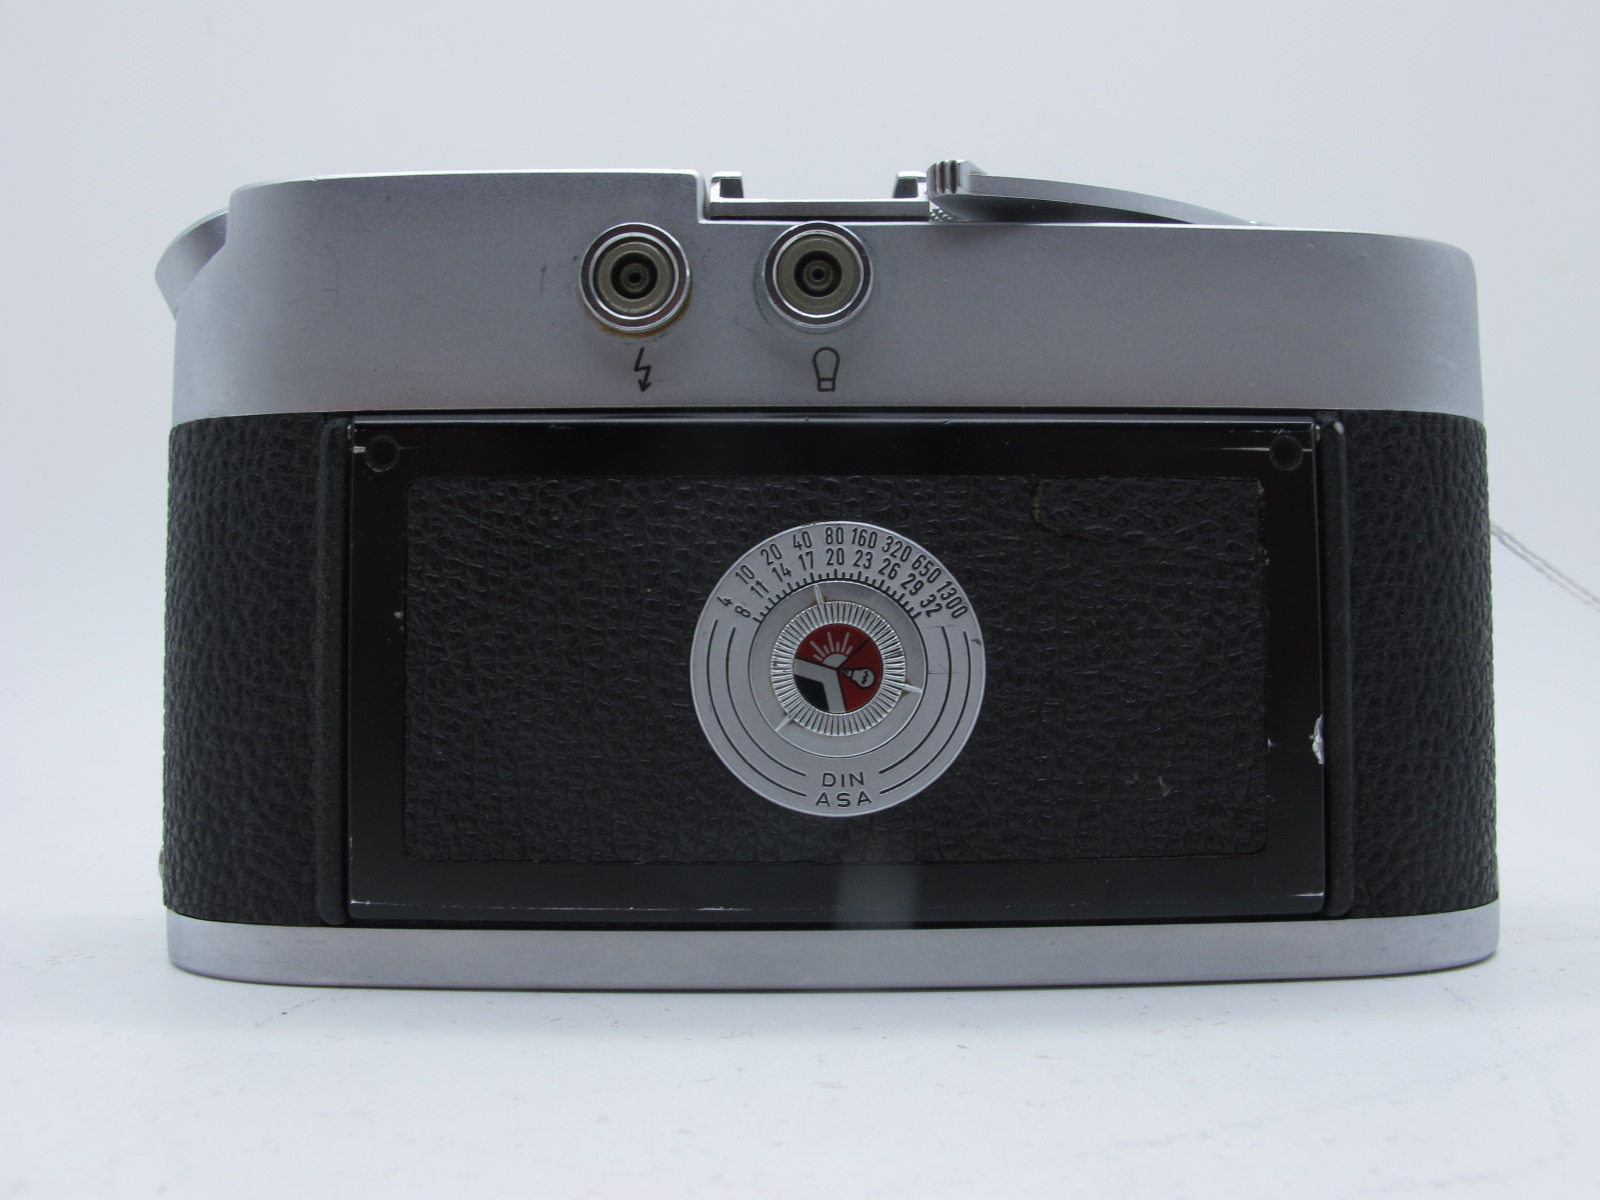 Leica MDa - 1360904 Body Only. - Image 3 of 7